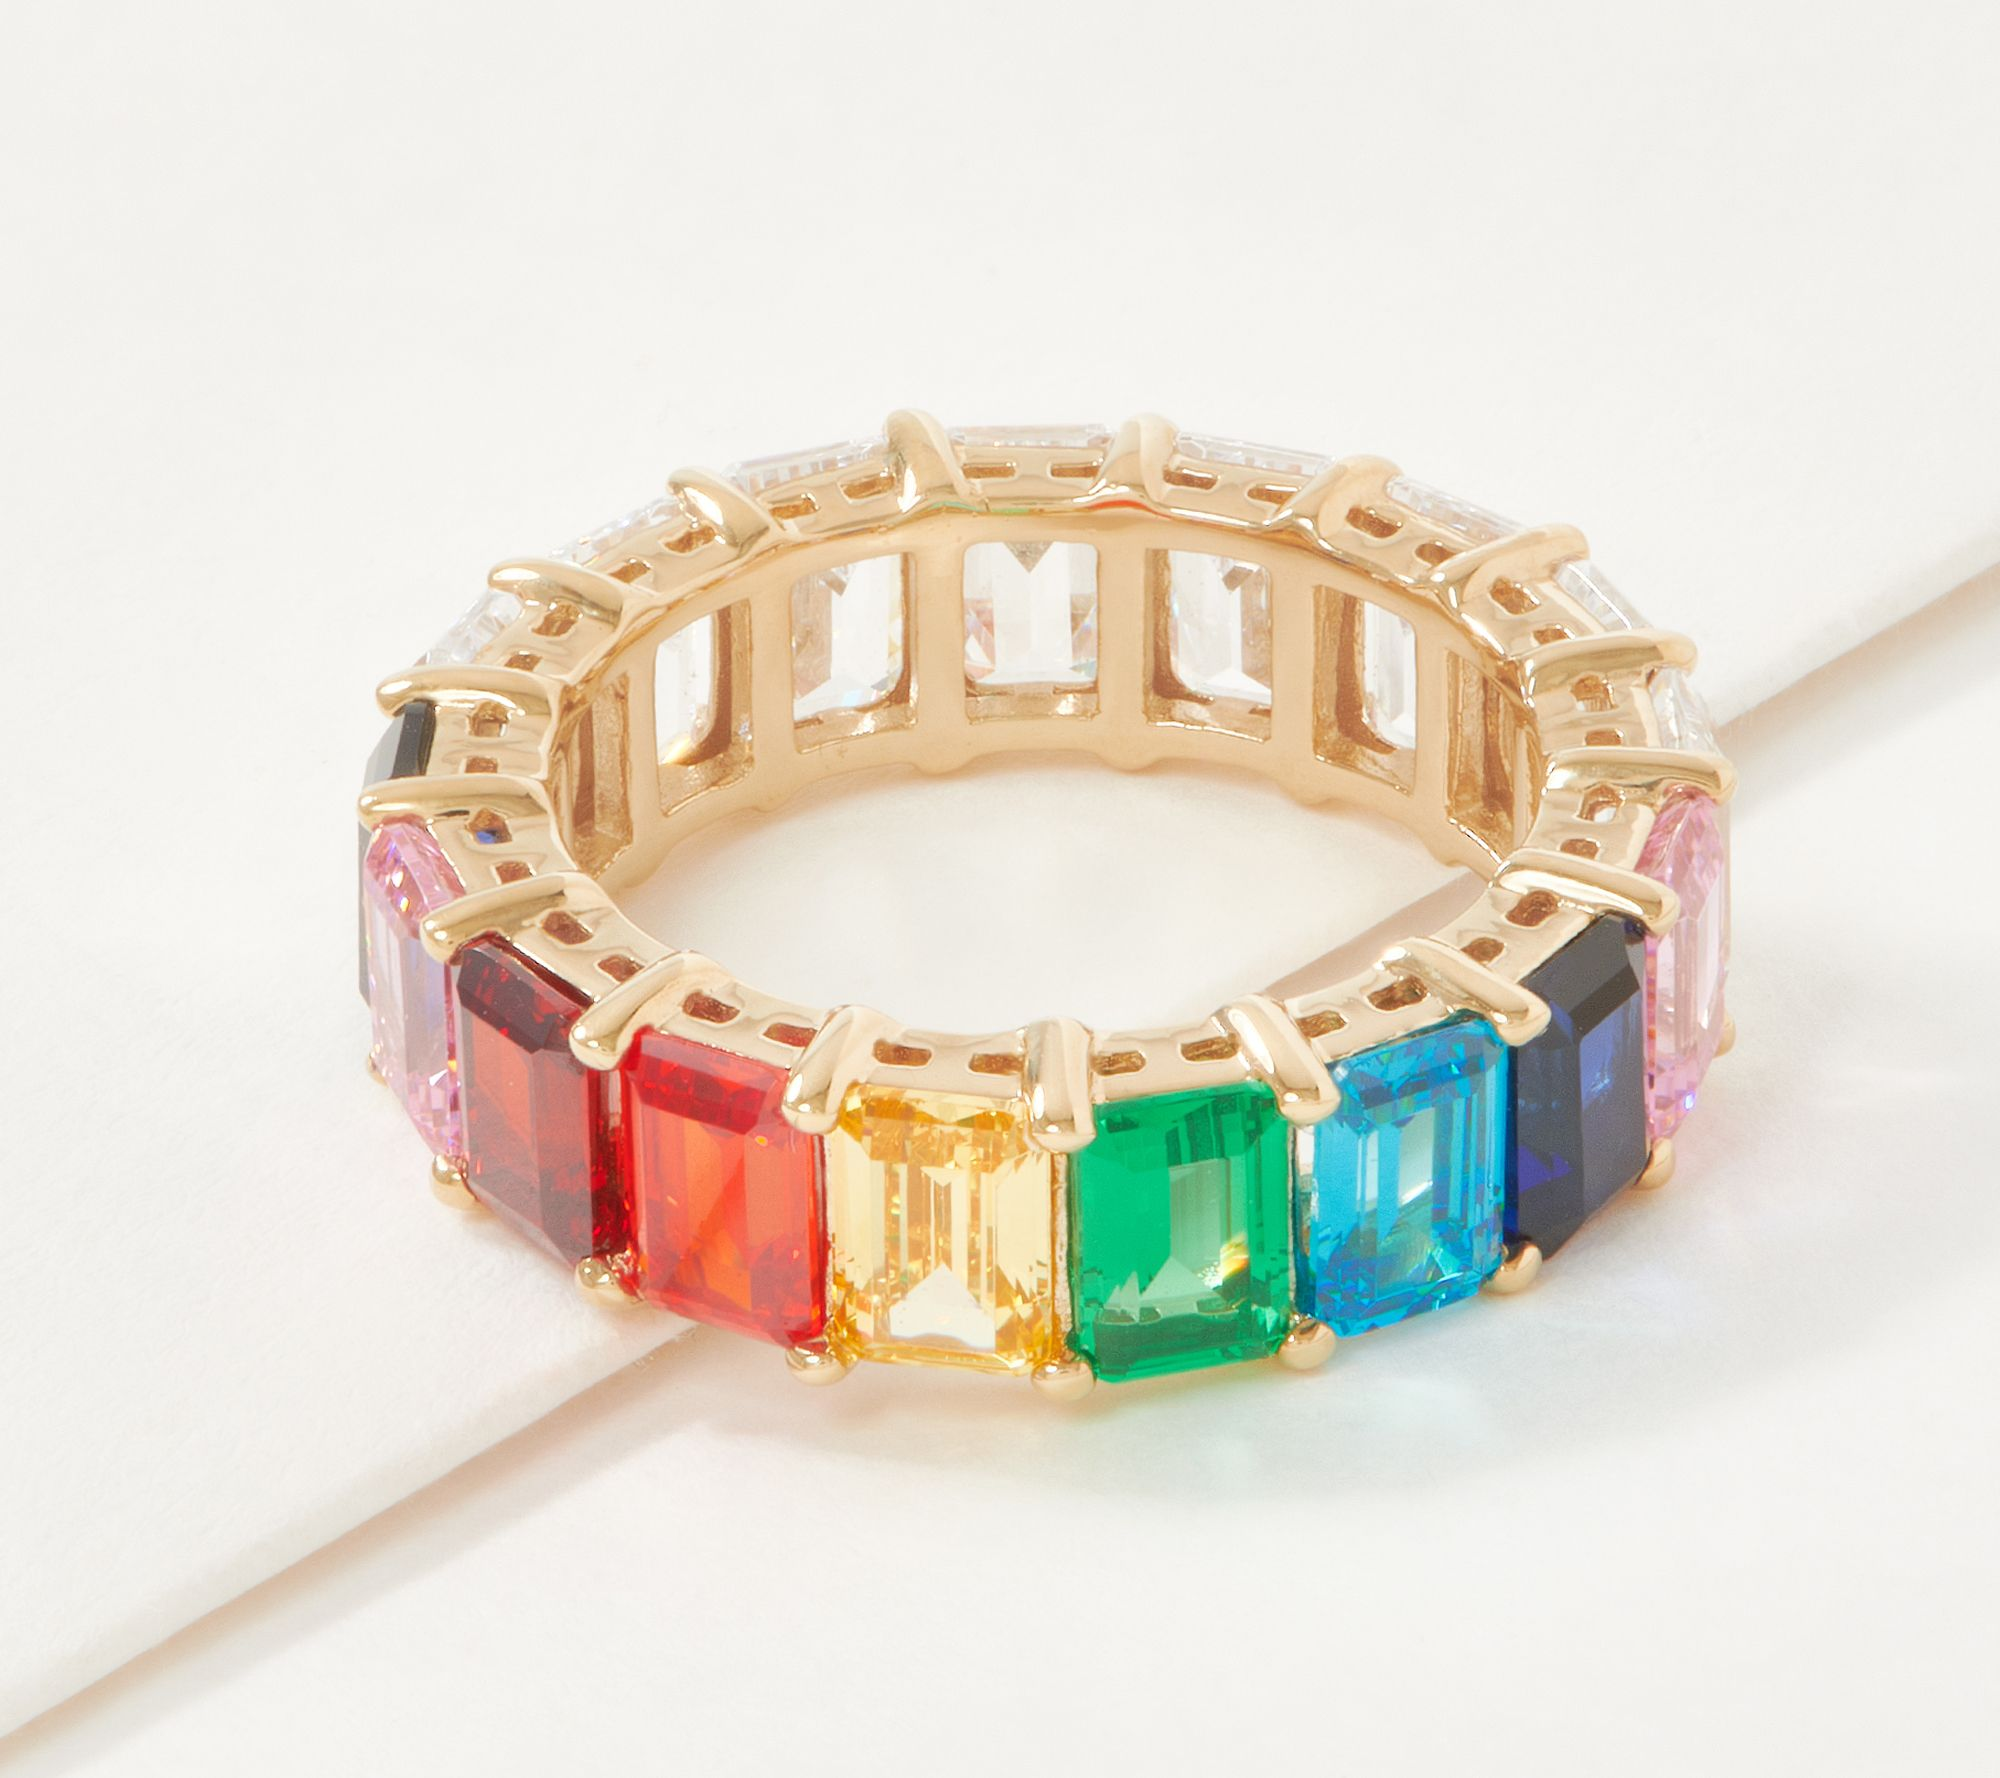 3 Pieces Rainbow Emerald Cut Ring Cubic Zirconia Baguette Ring Eternity Band Ring for Woman Girls